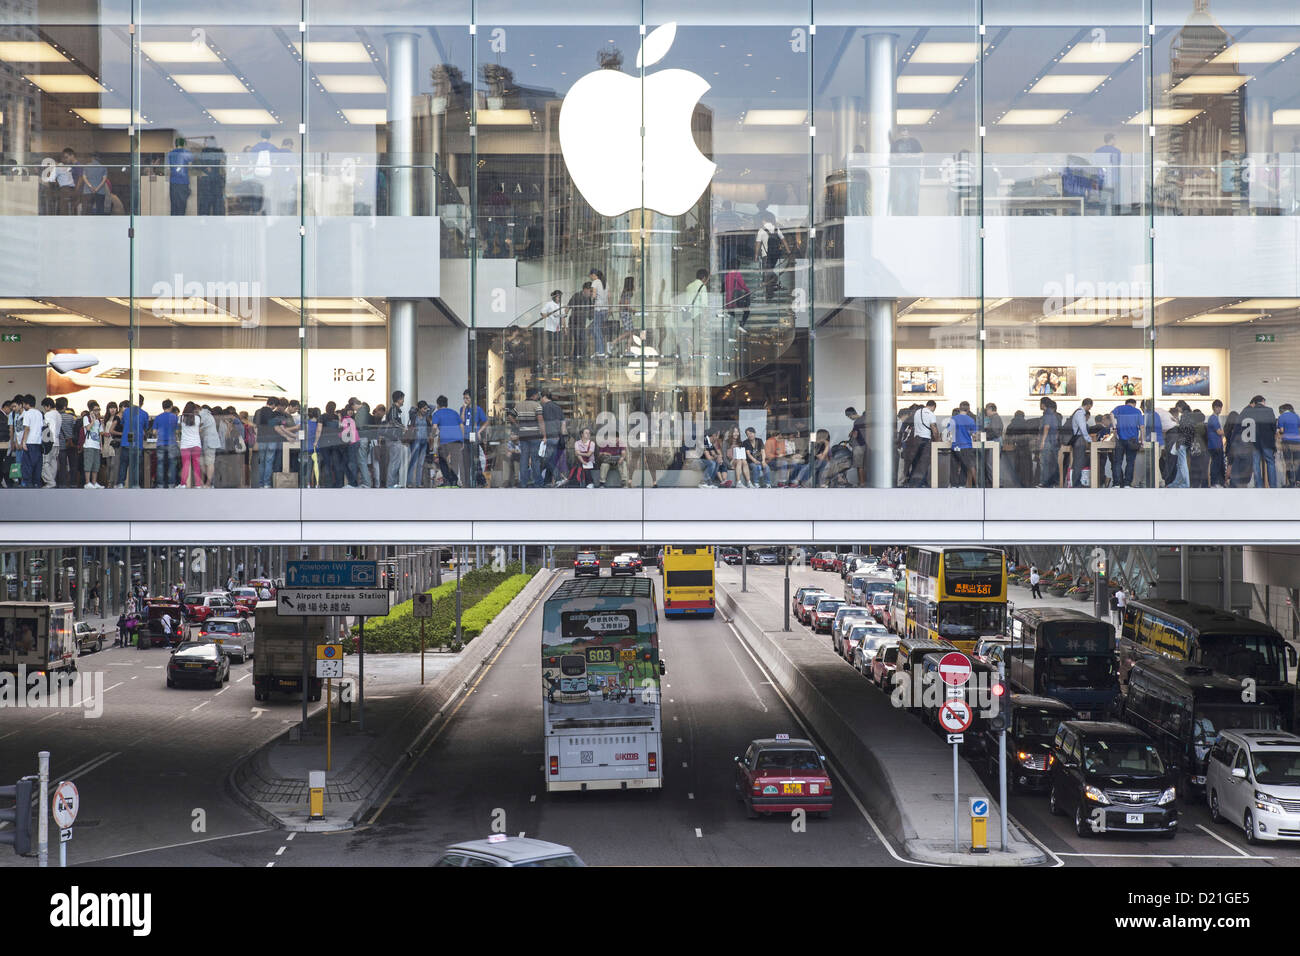 Apple store retail space above busy street, IFC Mall, Hongkong, China, Asia Stock Photo